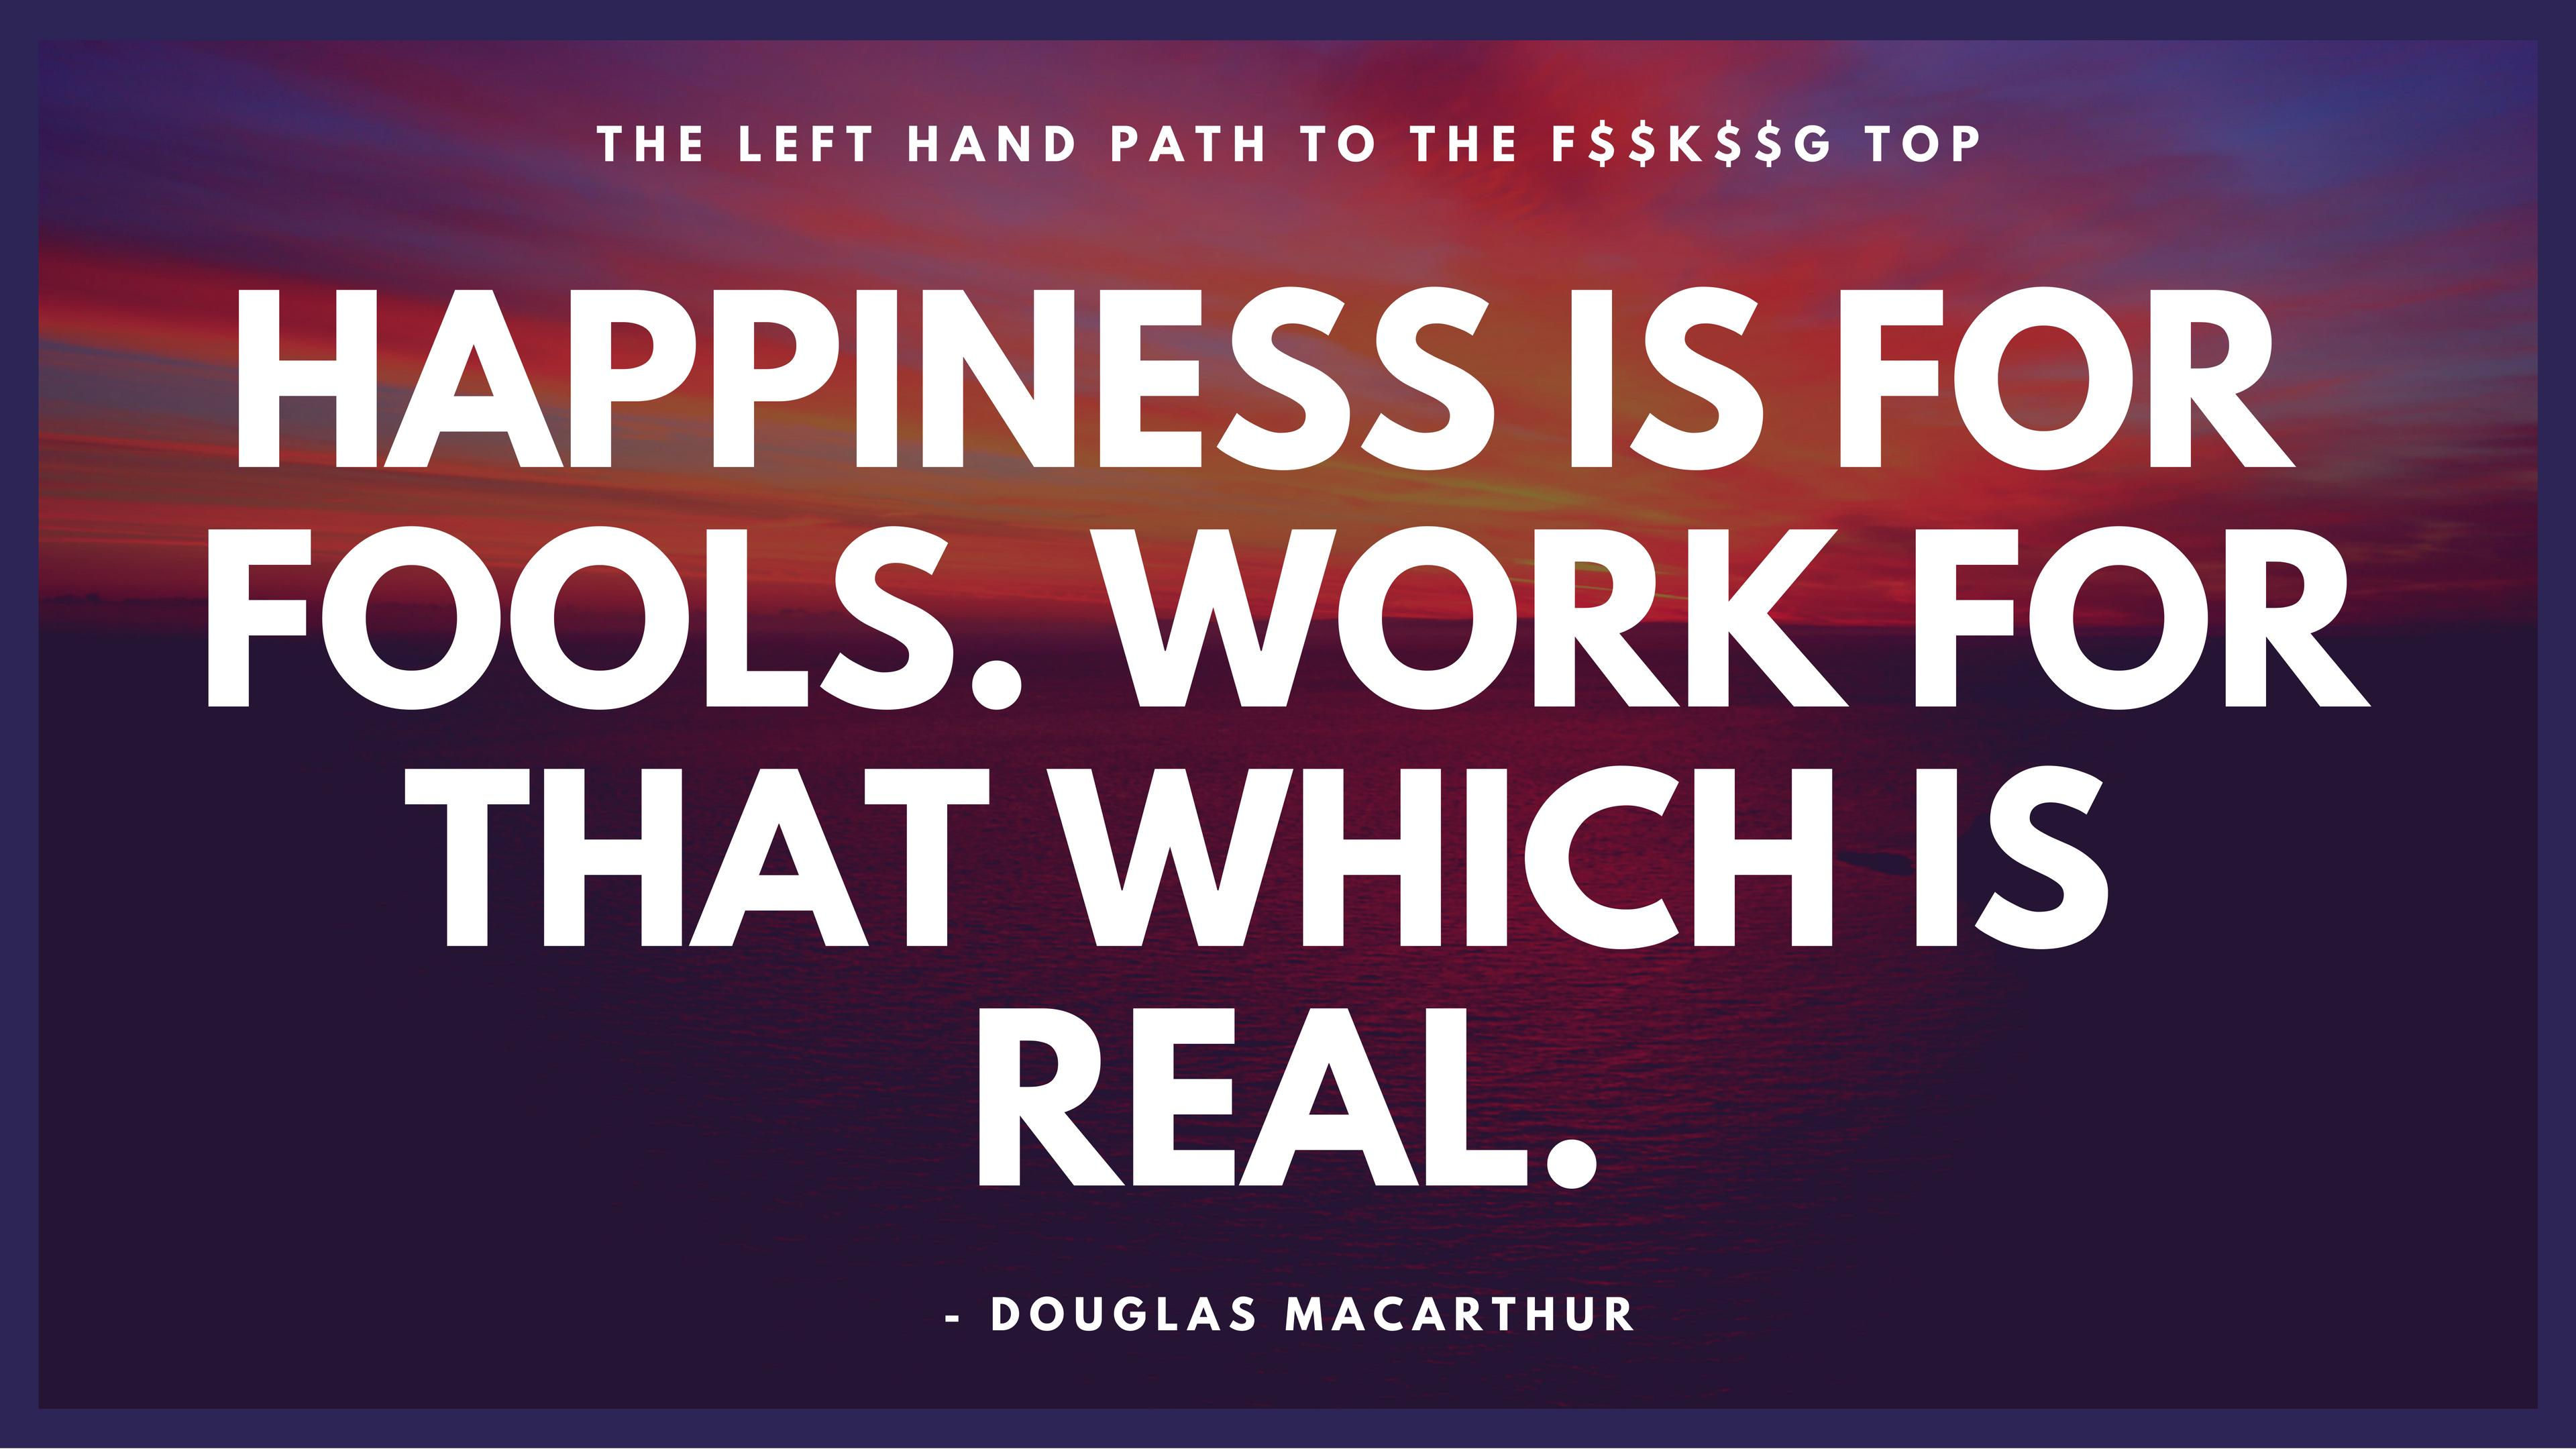 Happiness is for fools – Douglas MacArthur [3840 x 2160] [OC]